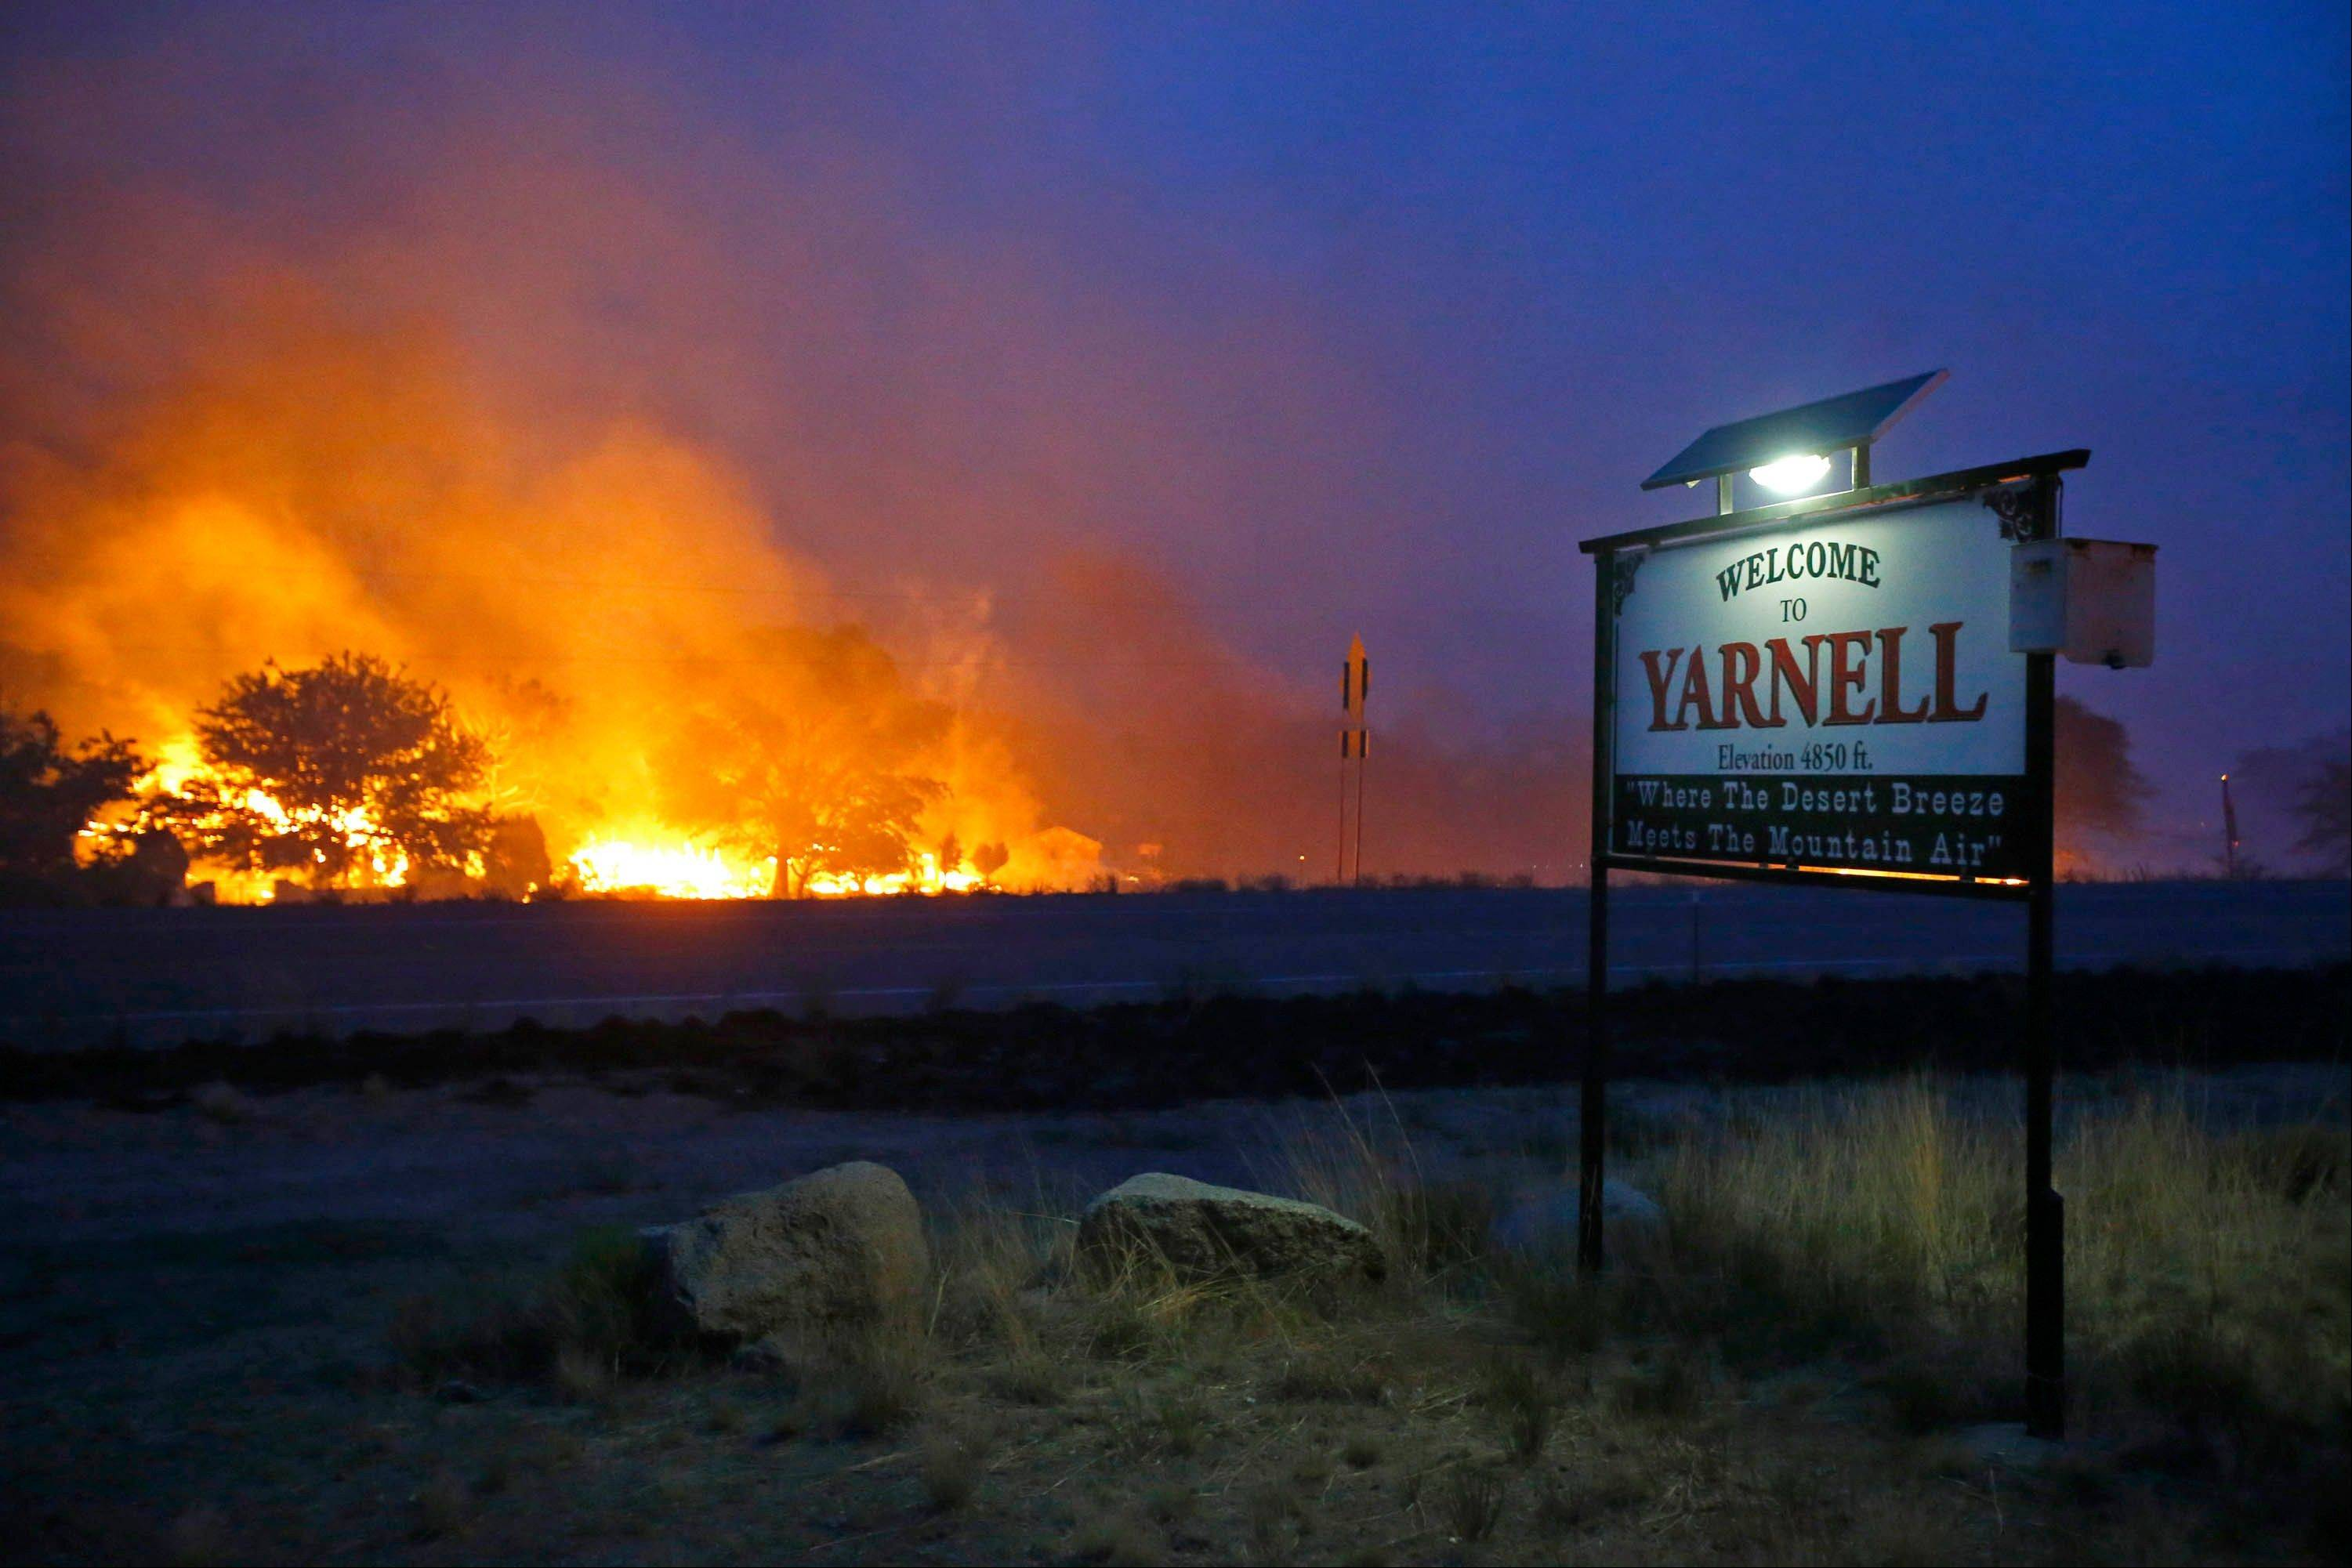 An Arizona fire chief says the wildfire that killed 19 members of his crew near Yarnell was moving fast and fueled by hot, dry conditions. The fire started with a lightning strike on Friday and spread to 2,000 acres on Sunday amid triple-digit temperatures.